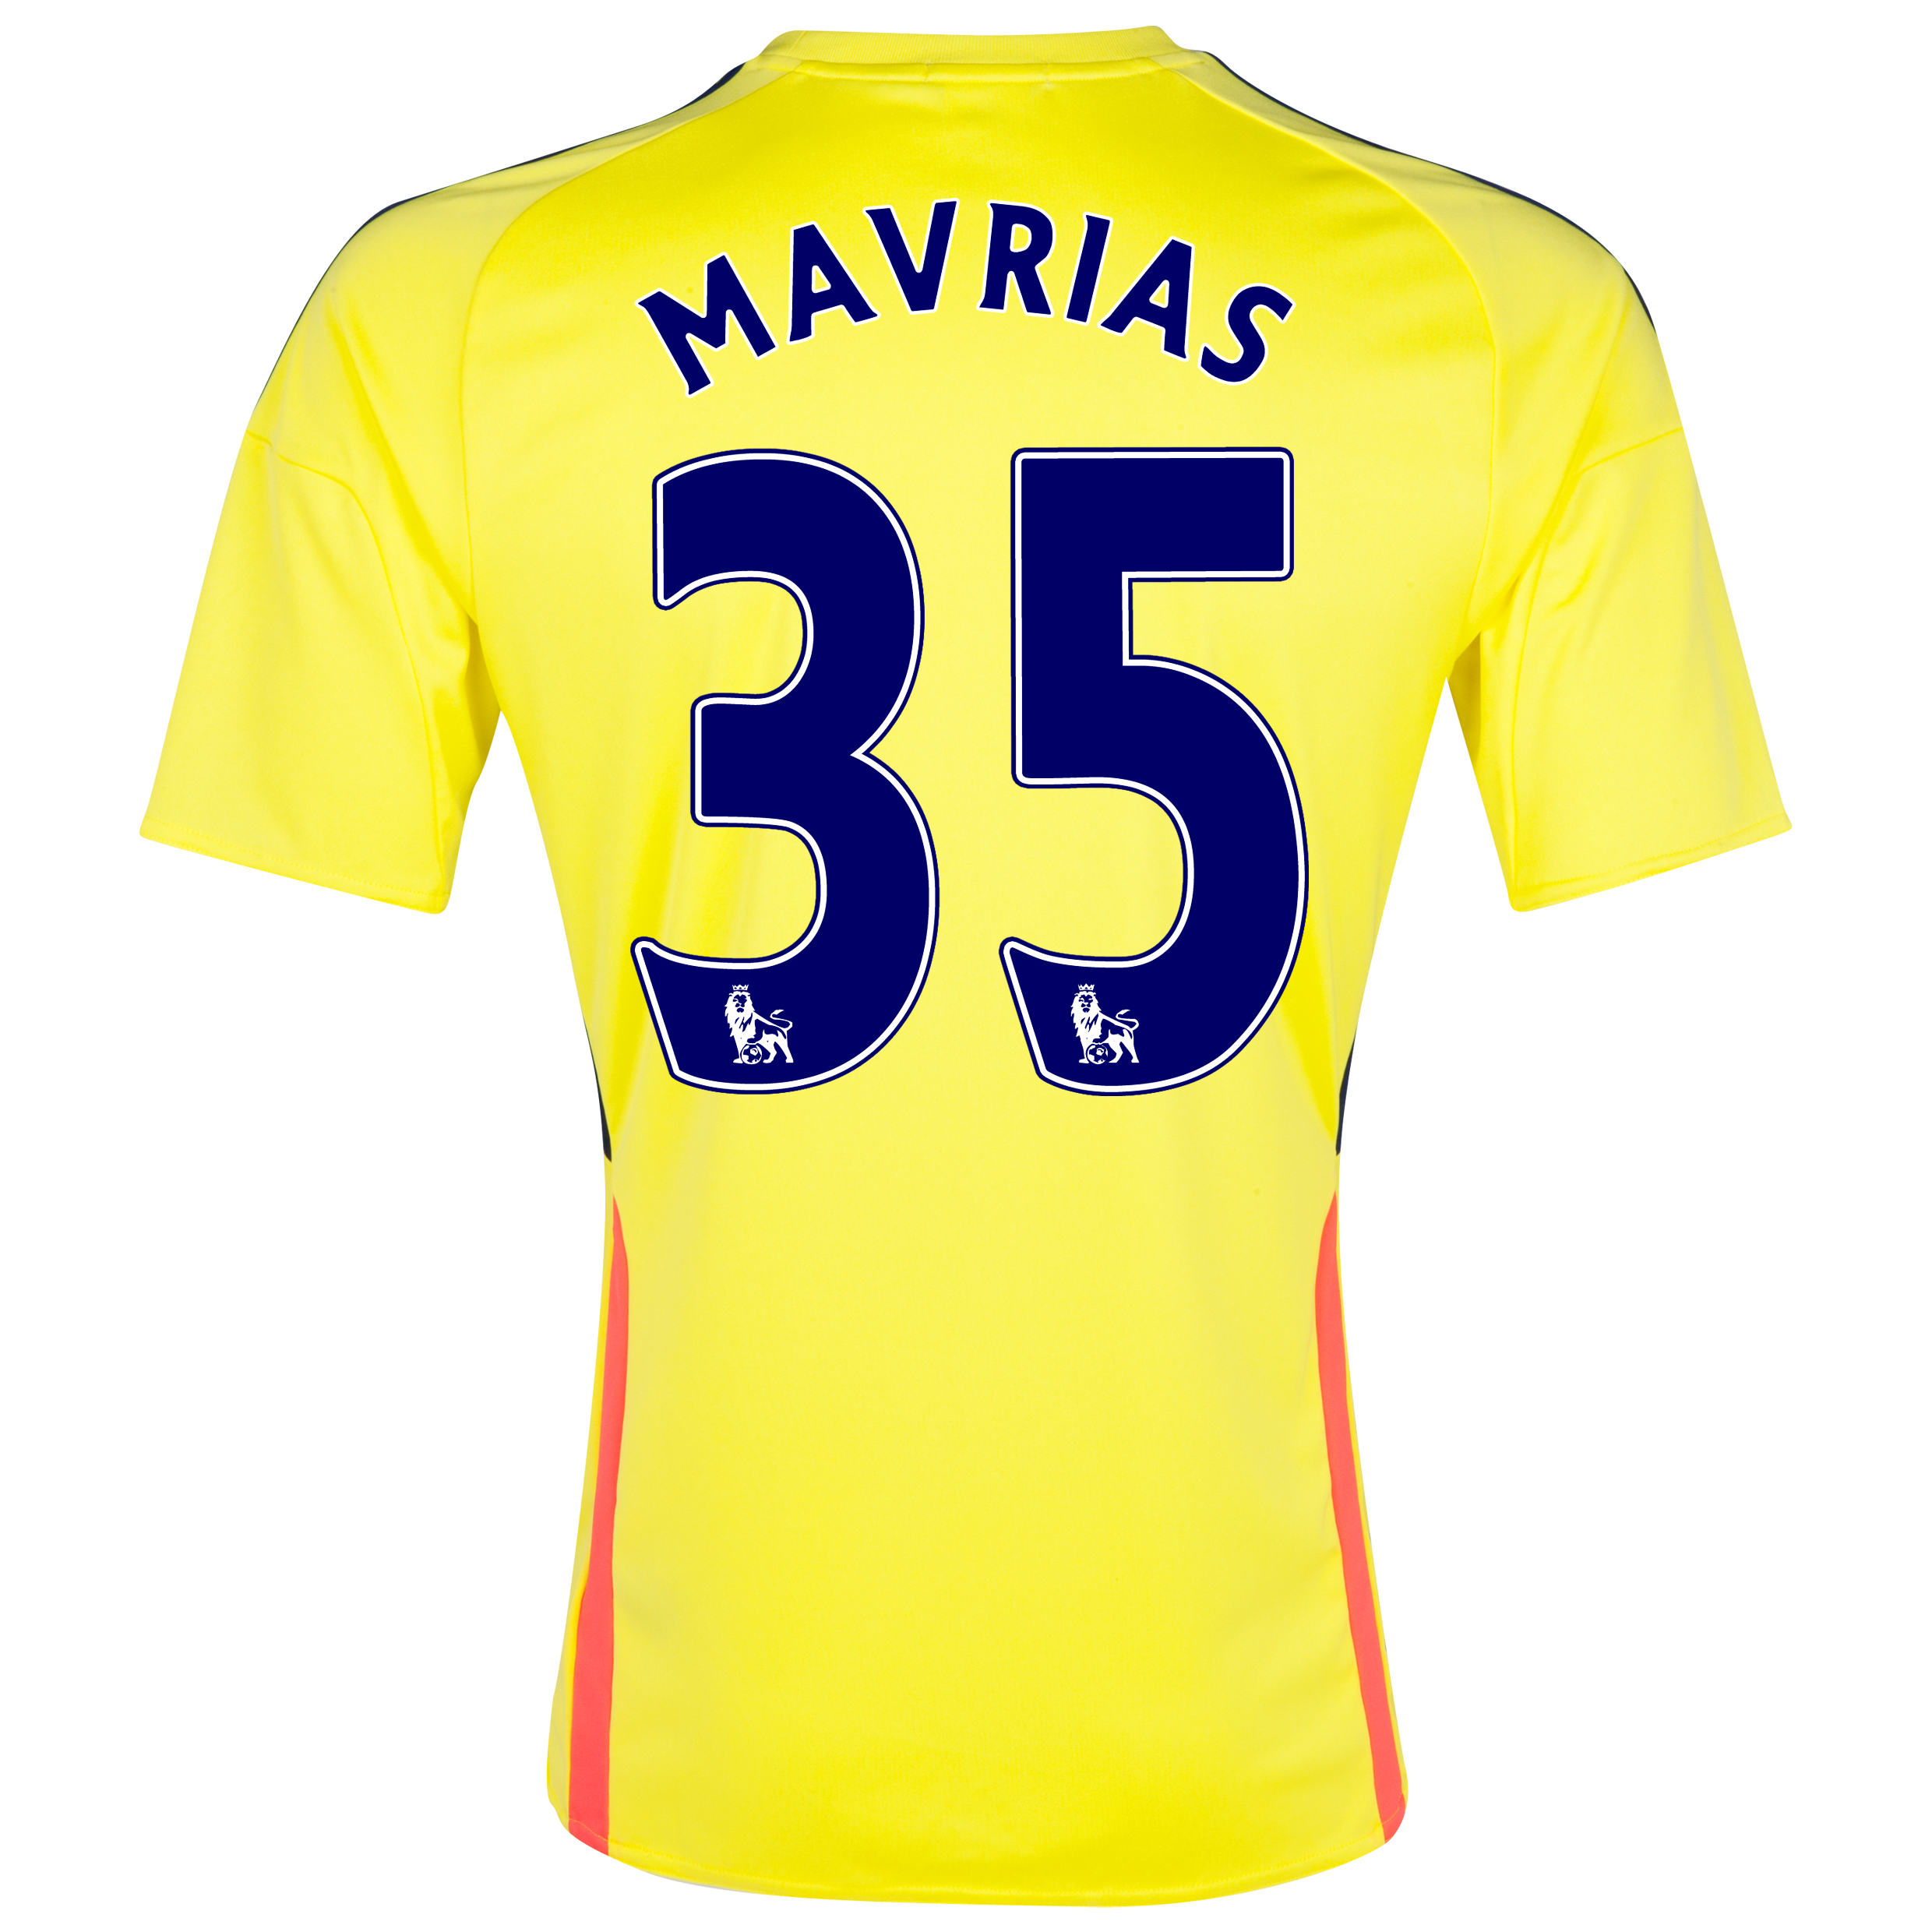 Sunderland Away Shirt 2013/14 - Junior with Mavrias 35 printing